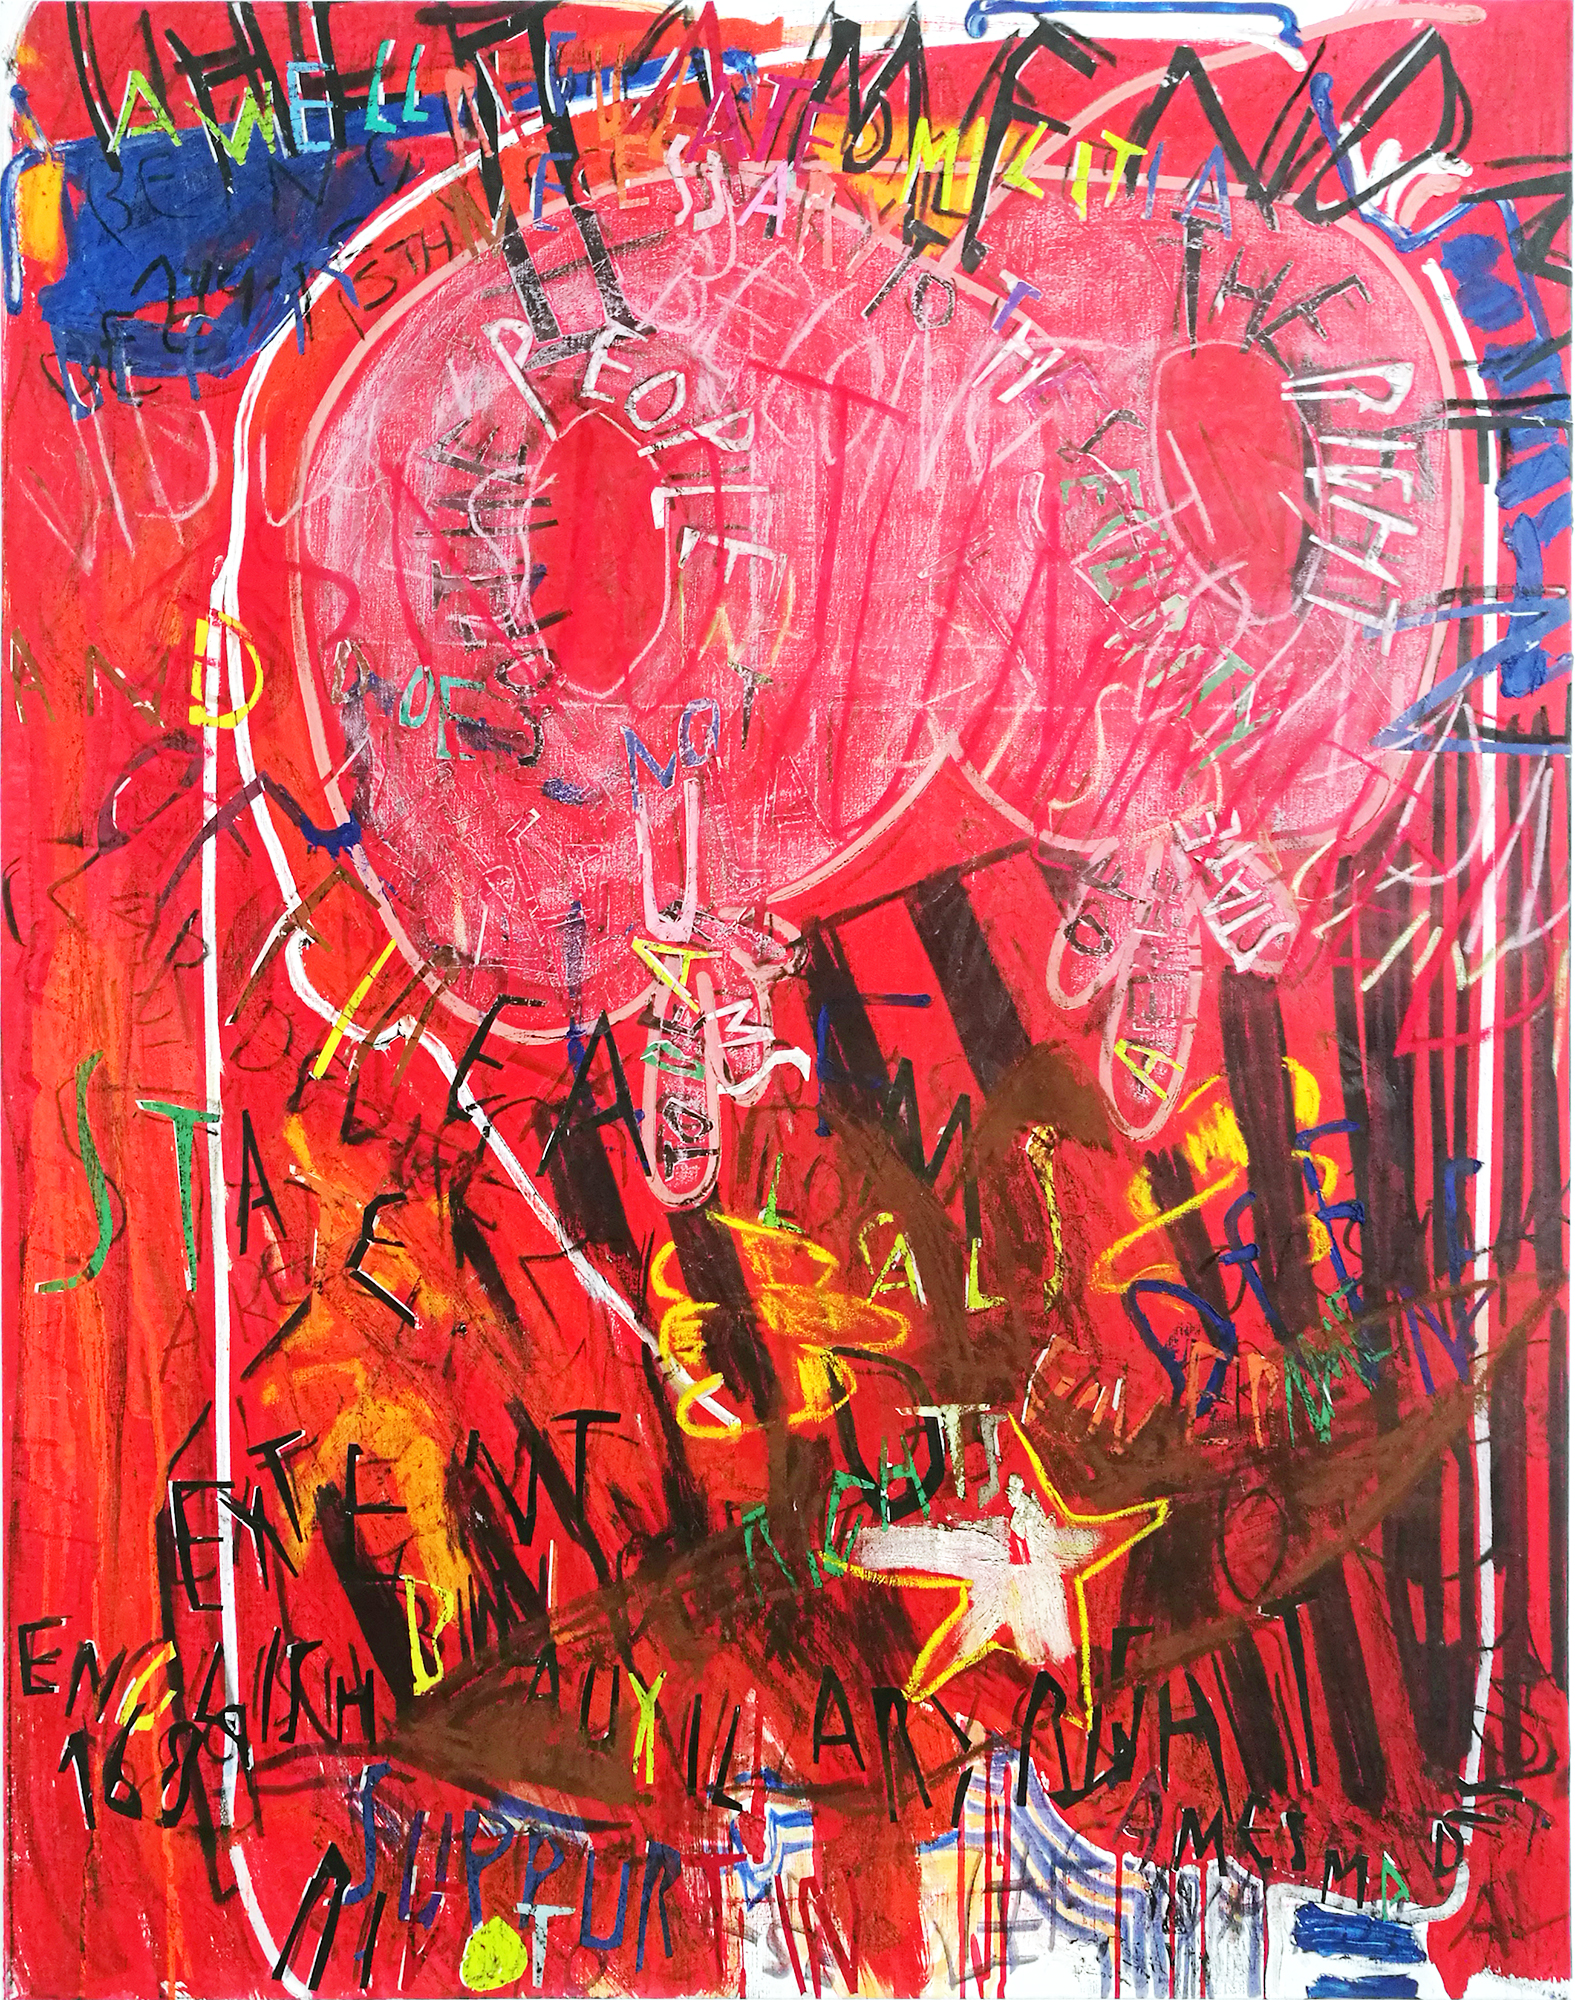 Despina Stokou_RGB affirmations (red)   _Oil and mixed media collage on canvas_123 x 91cm _2018.jpg